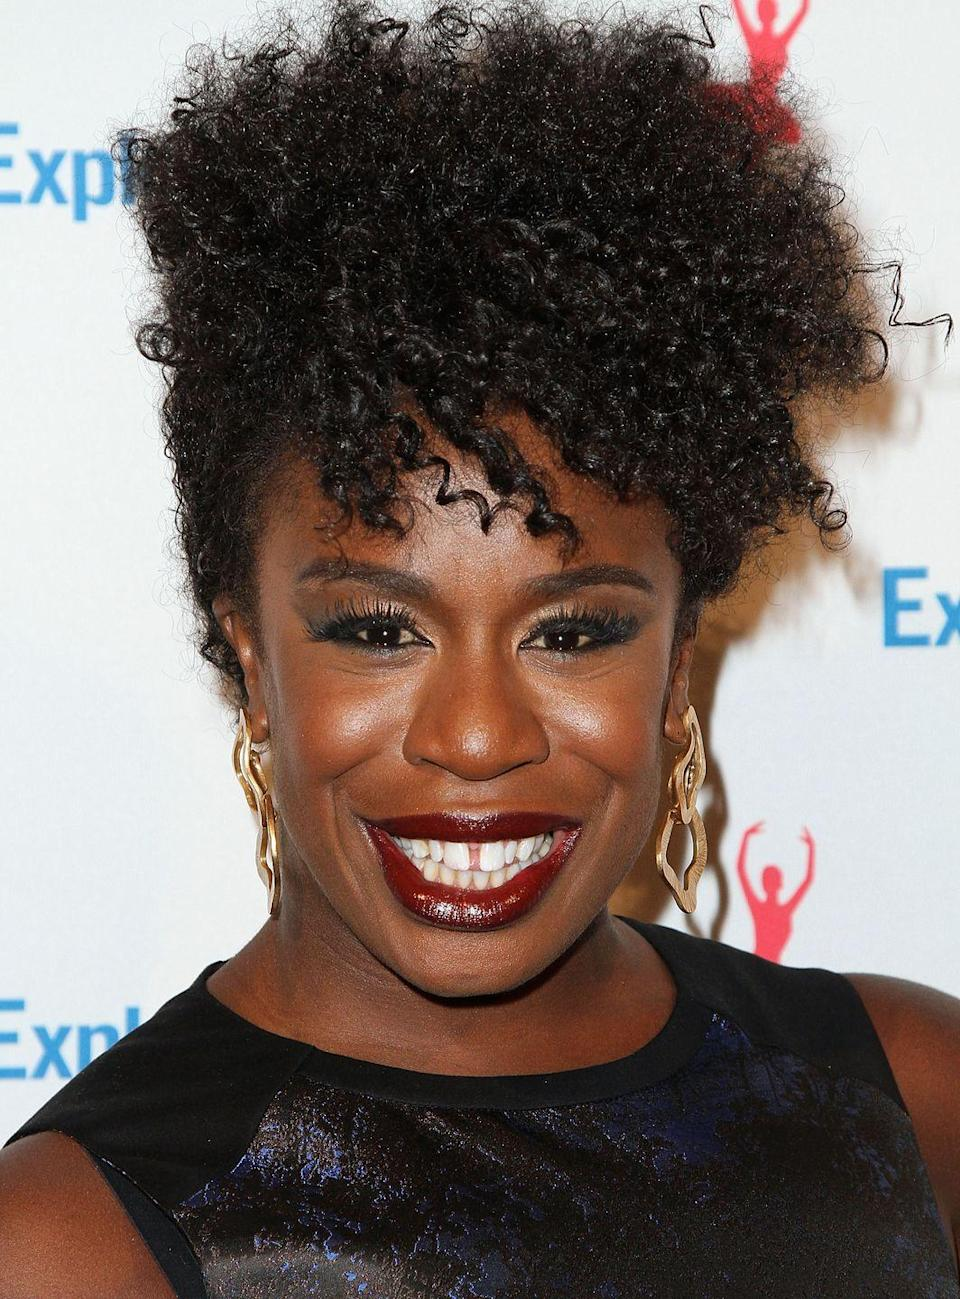 """<p>Play up natural tendrils with actress <strong>Uzo Aduba</strong>'s romantic all-on-top style that looks great with <a href=""""https://www.goodhousekeeping.com/beauty/makeup/tips/g2329/best-drugstore-cosmetics/"""" rel=""""nofollow noopener"""" target=""""_blank"""" data-ylk=""""slk:daring makeup"""" class=""""link rapid-noclick-resp"""">daring makeup</a> and fun jewelry.</p>"""